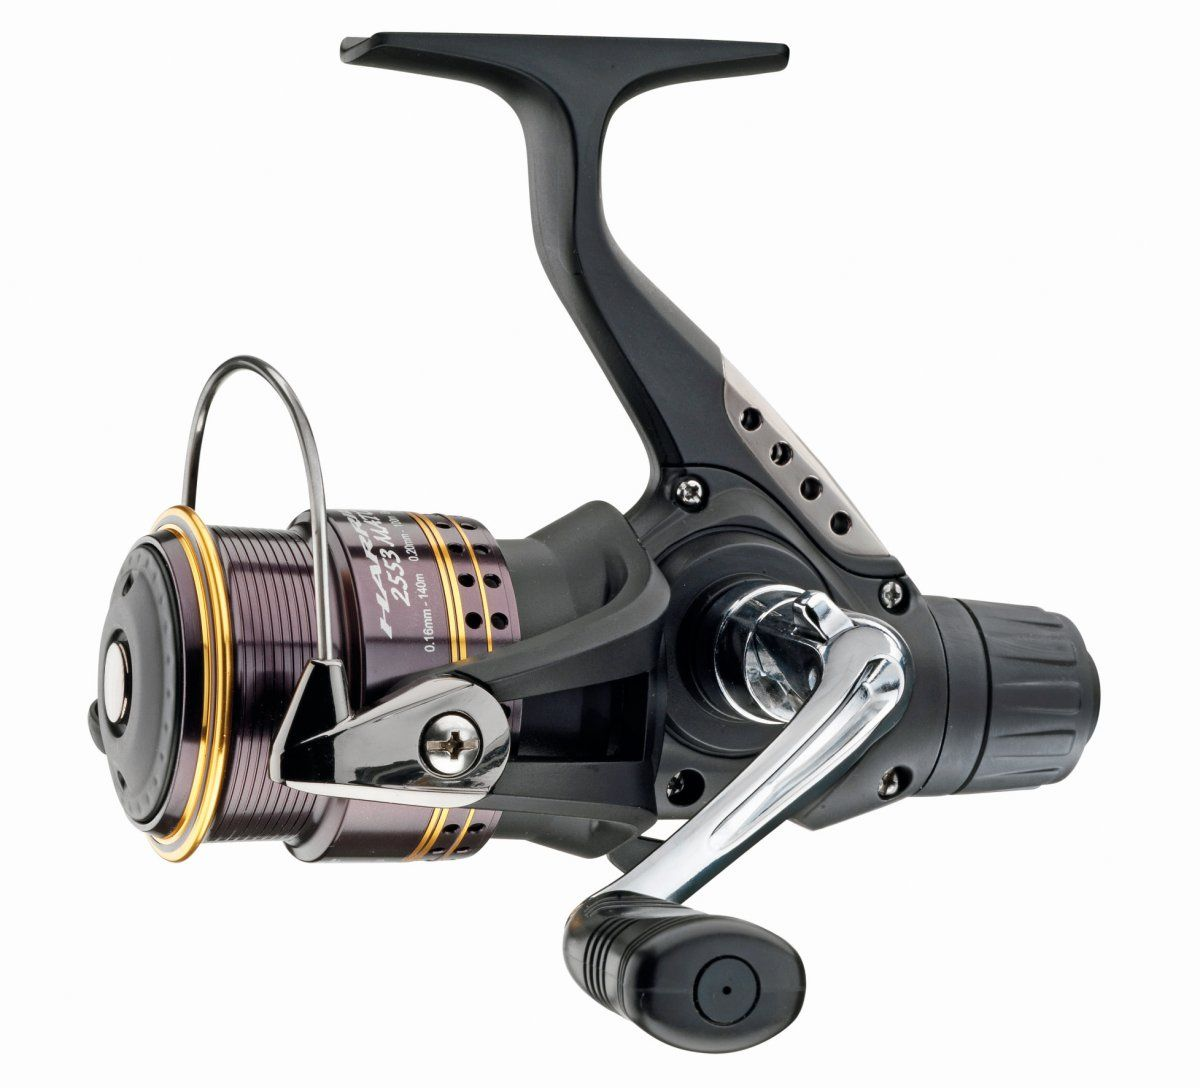 Daiwa Harrier Match 2553